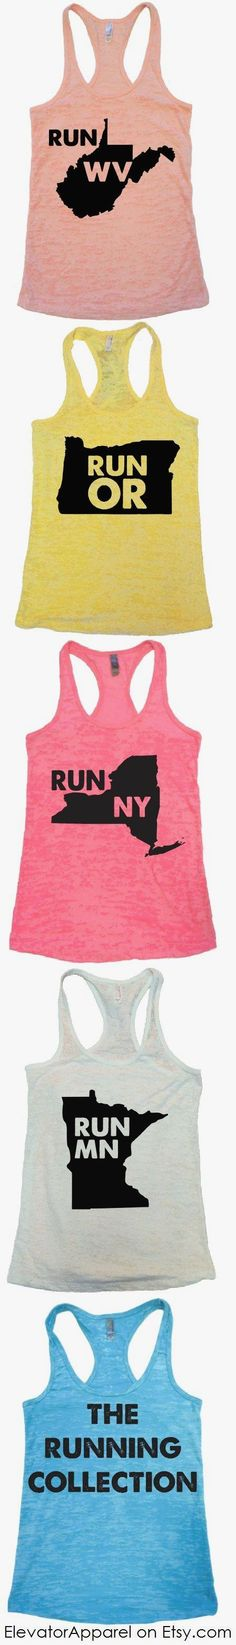 The Running Collecti  The Running Collection - Custom Tanks for any State, City, or Country! by Elevator Apparel